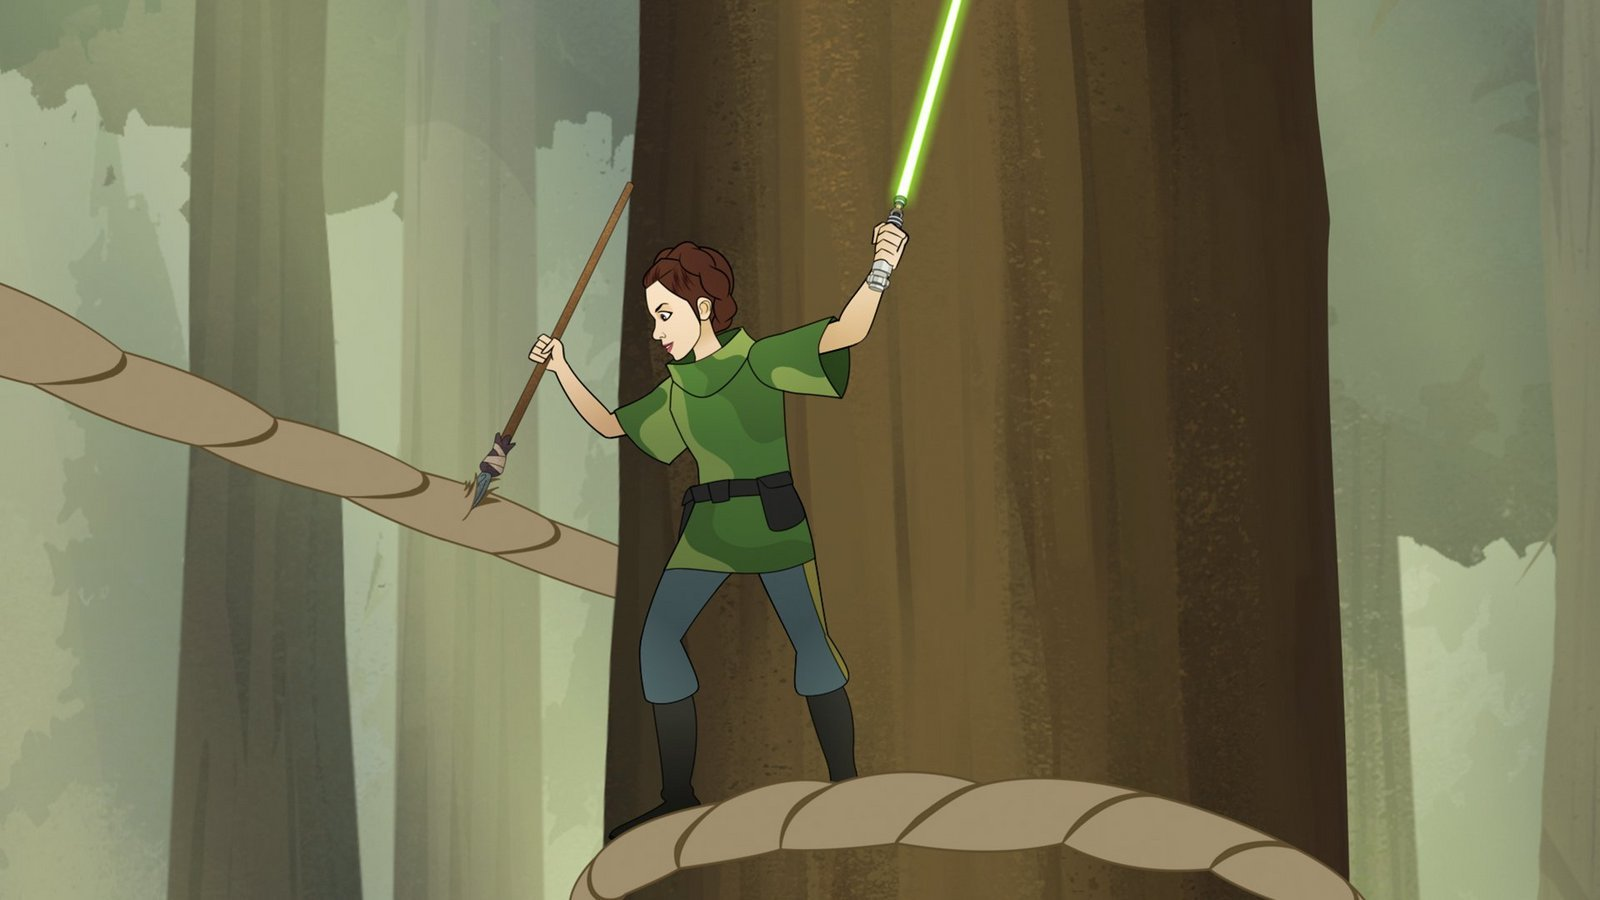 Star Wars Forces Of Destiny Returns With New Episodes Tomorrow Followed By A Tv Special May 25th On The Disney Channel Star Wars News Net